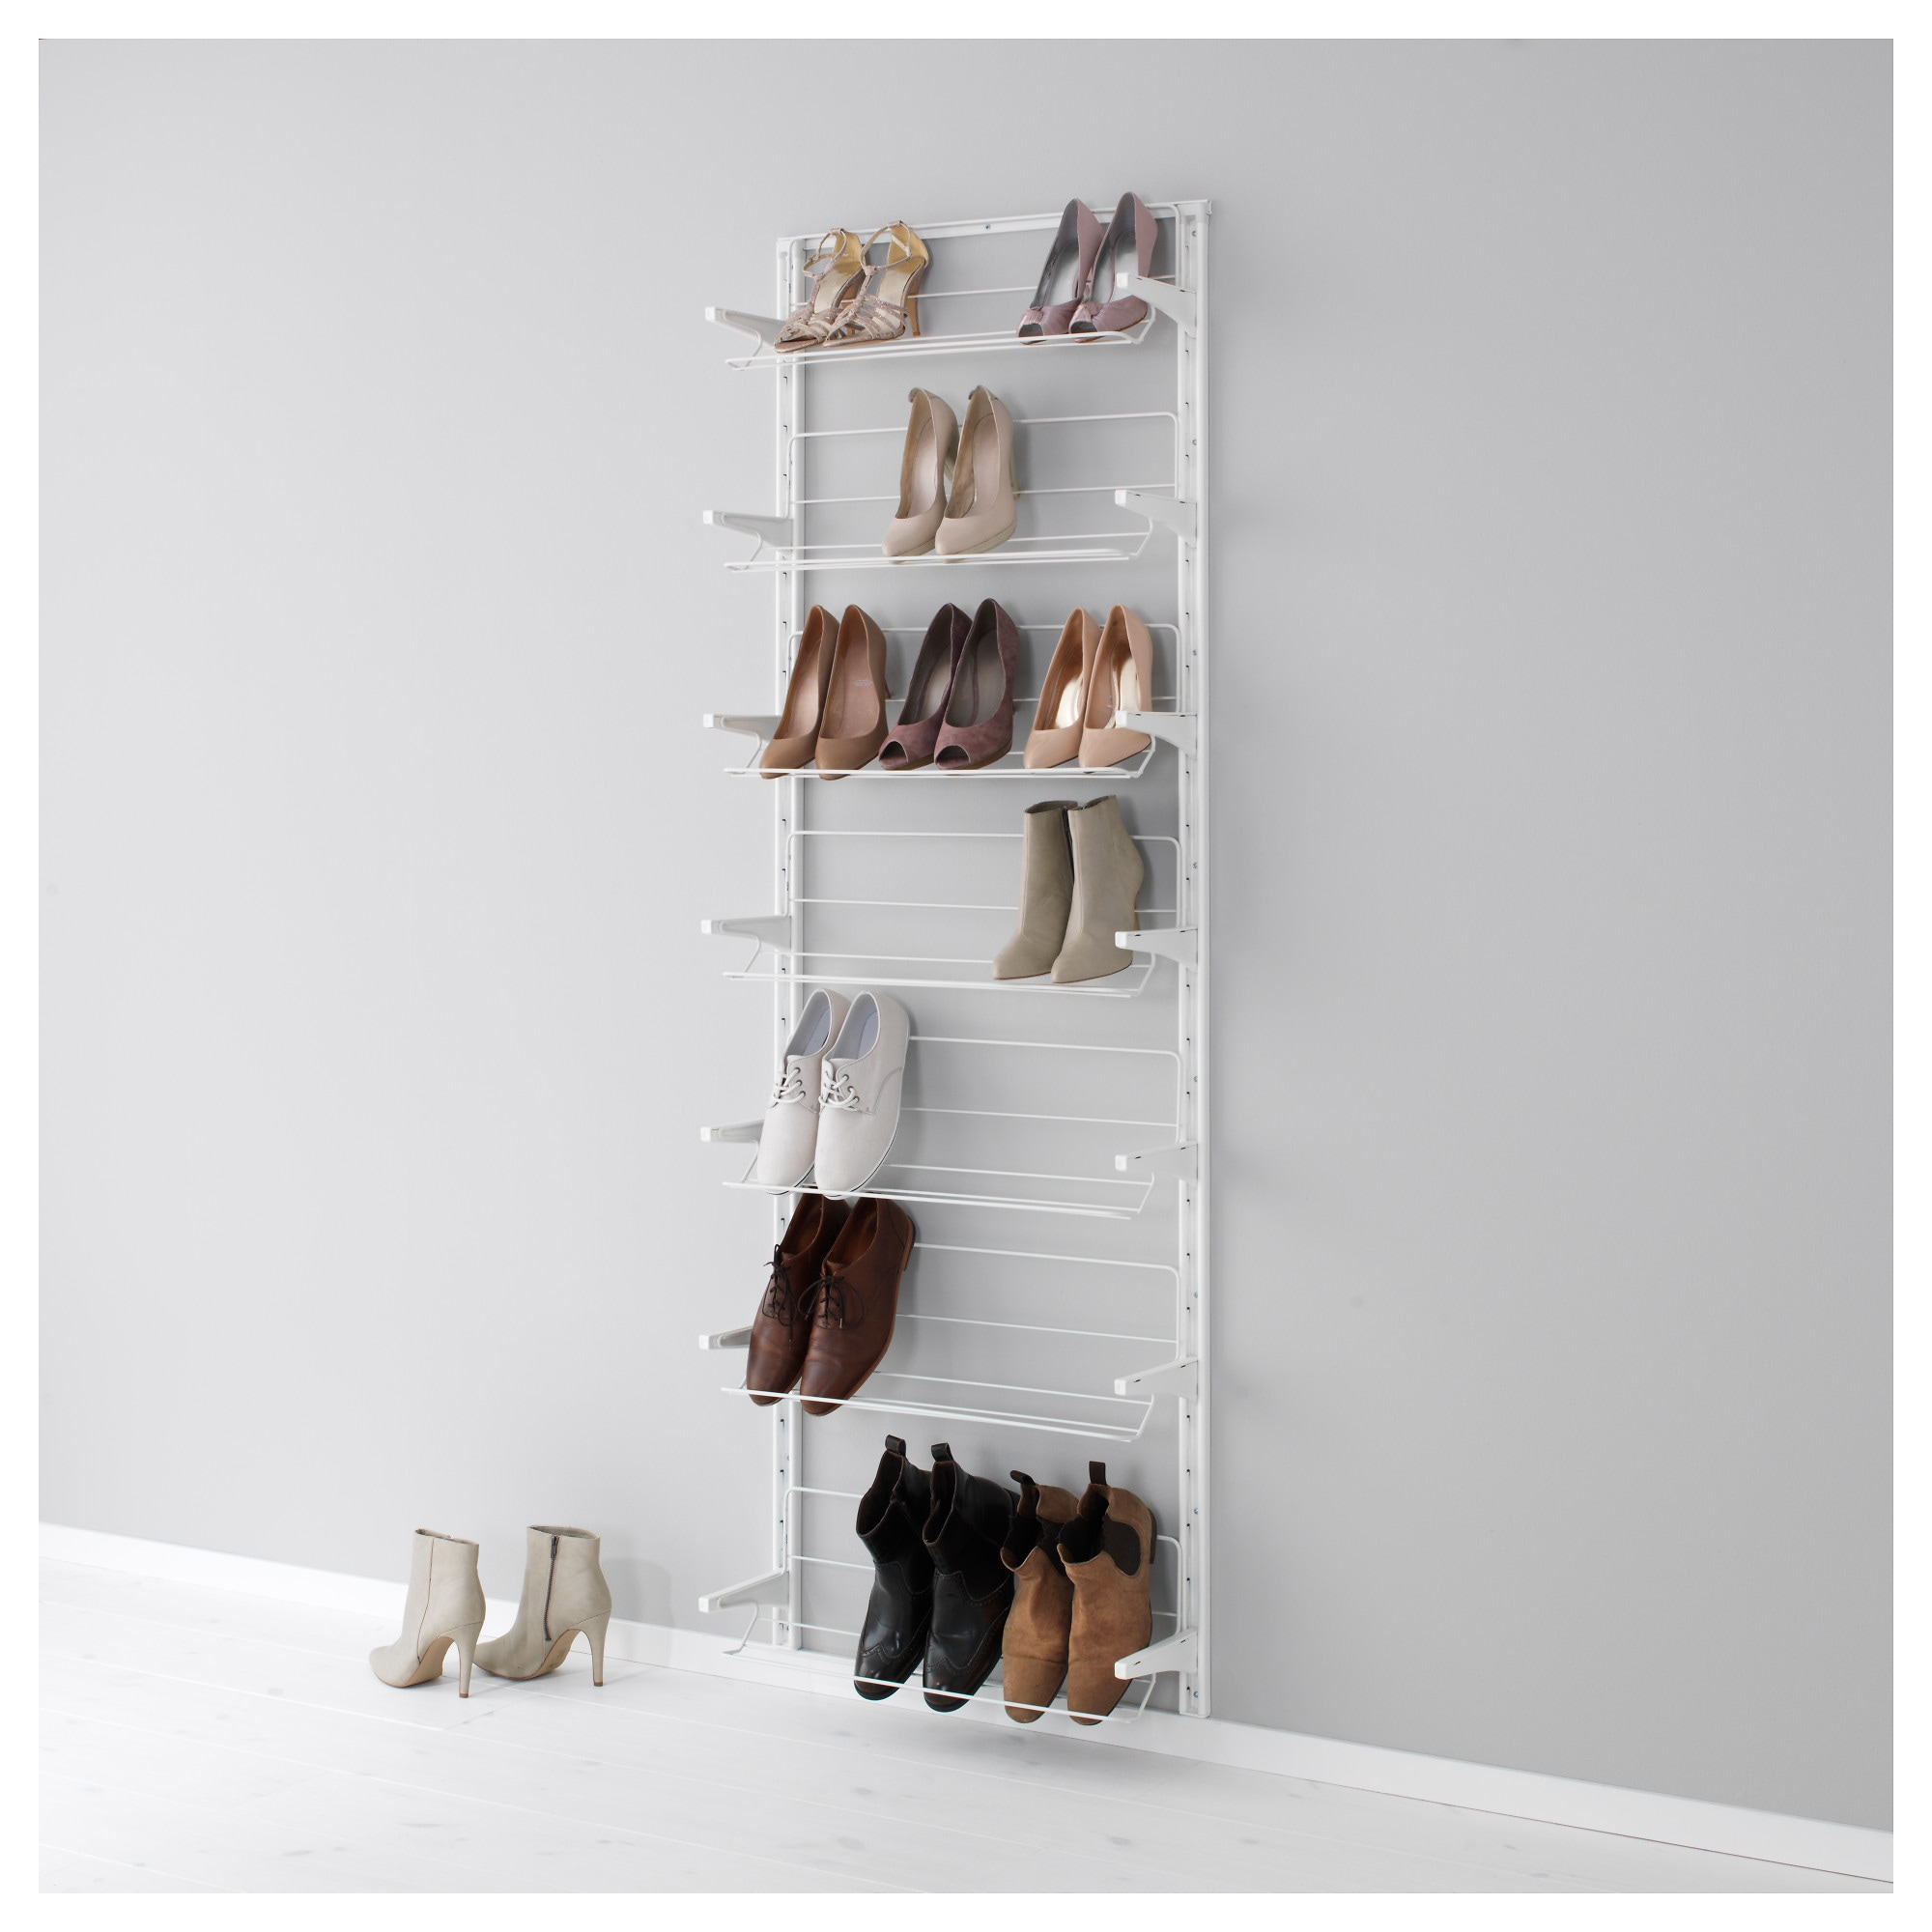 ALGOT Wall upright/shoe organizer - IKEA